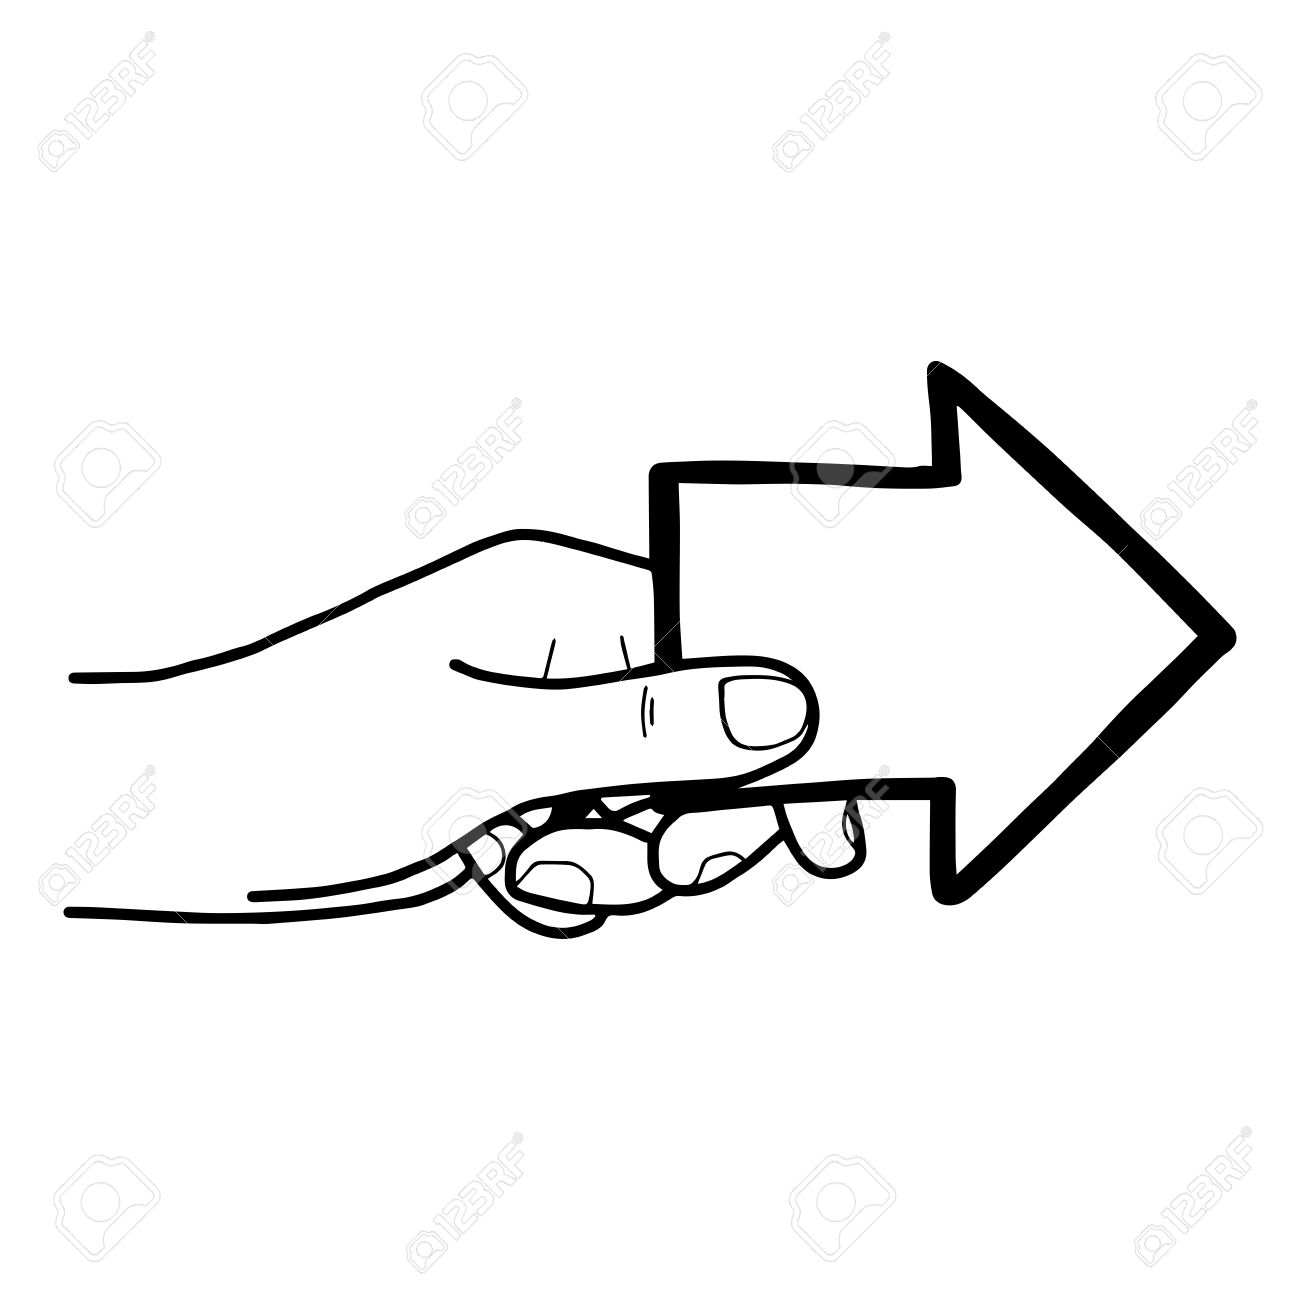 Free clipart arrow pointing left drawn free stock Illustration Vector Doodle Hand Drawn Of Left Hands Holding Arrow ... free stock